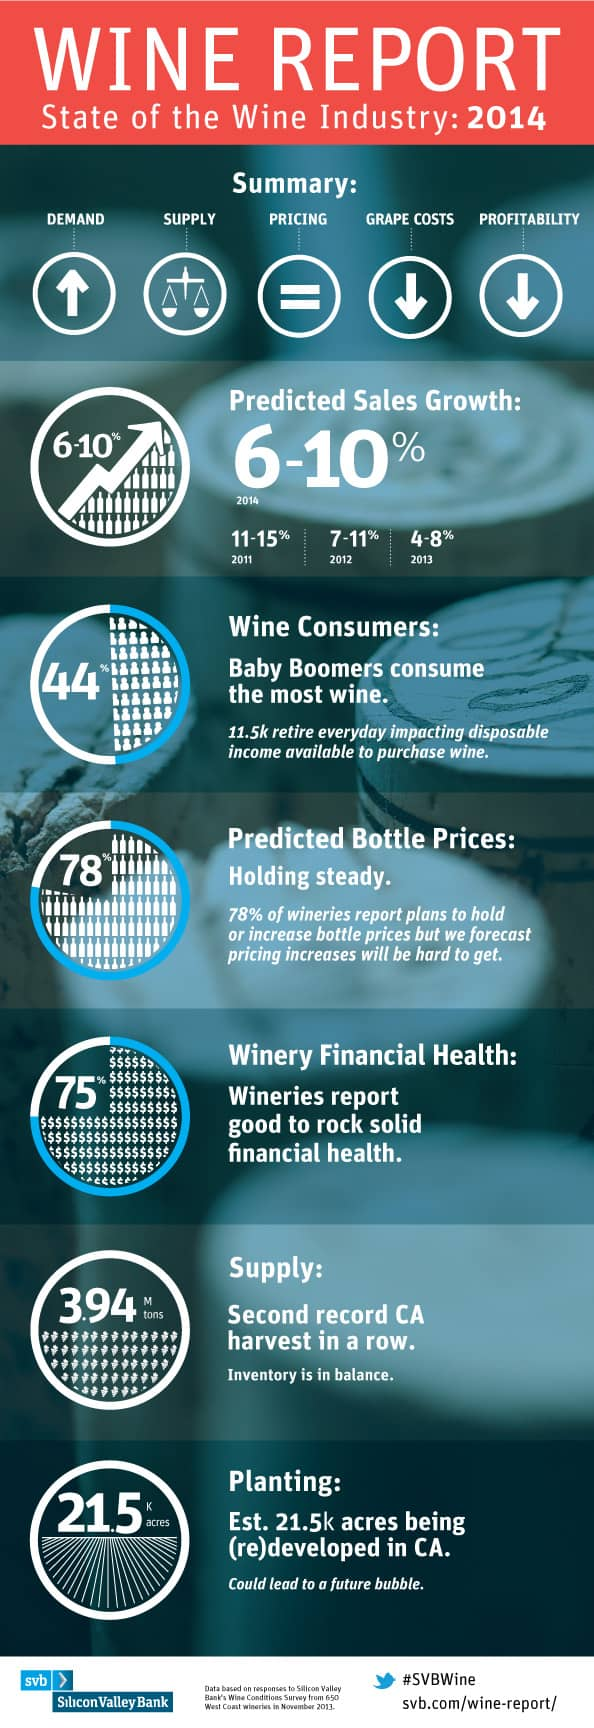 Silicon Valley Bank Wine Report - Infographic